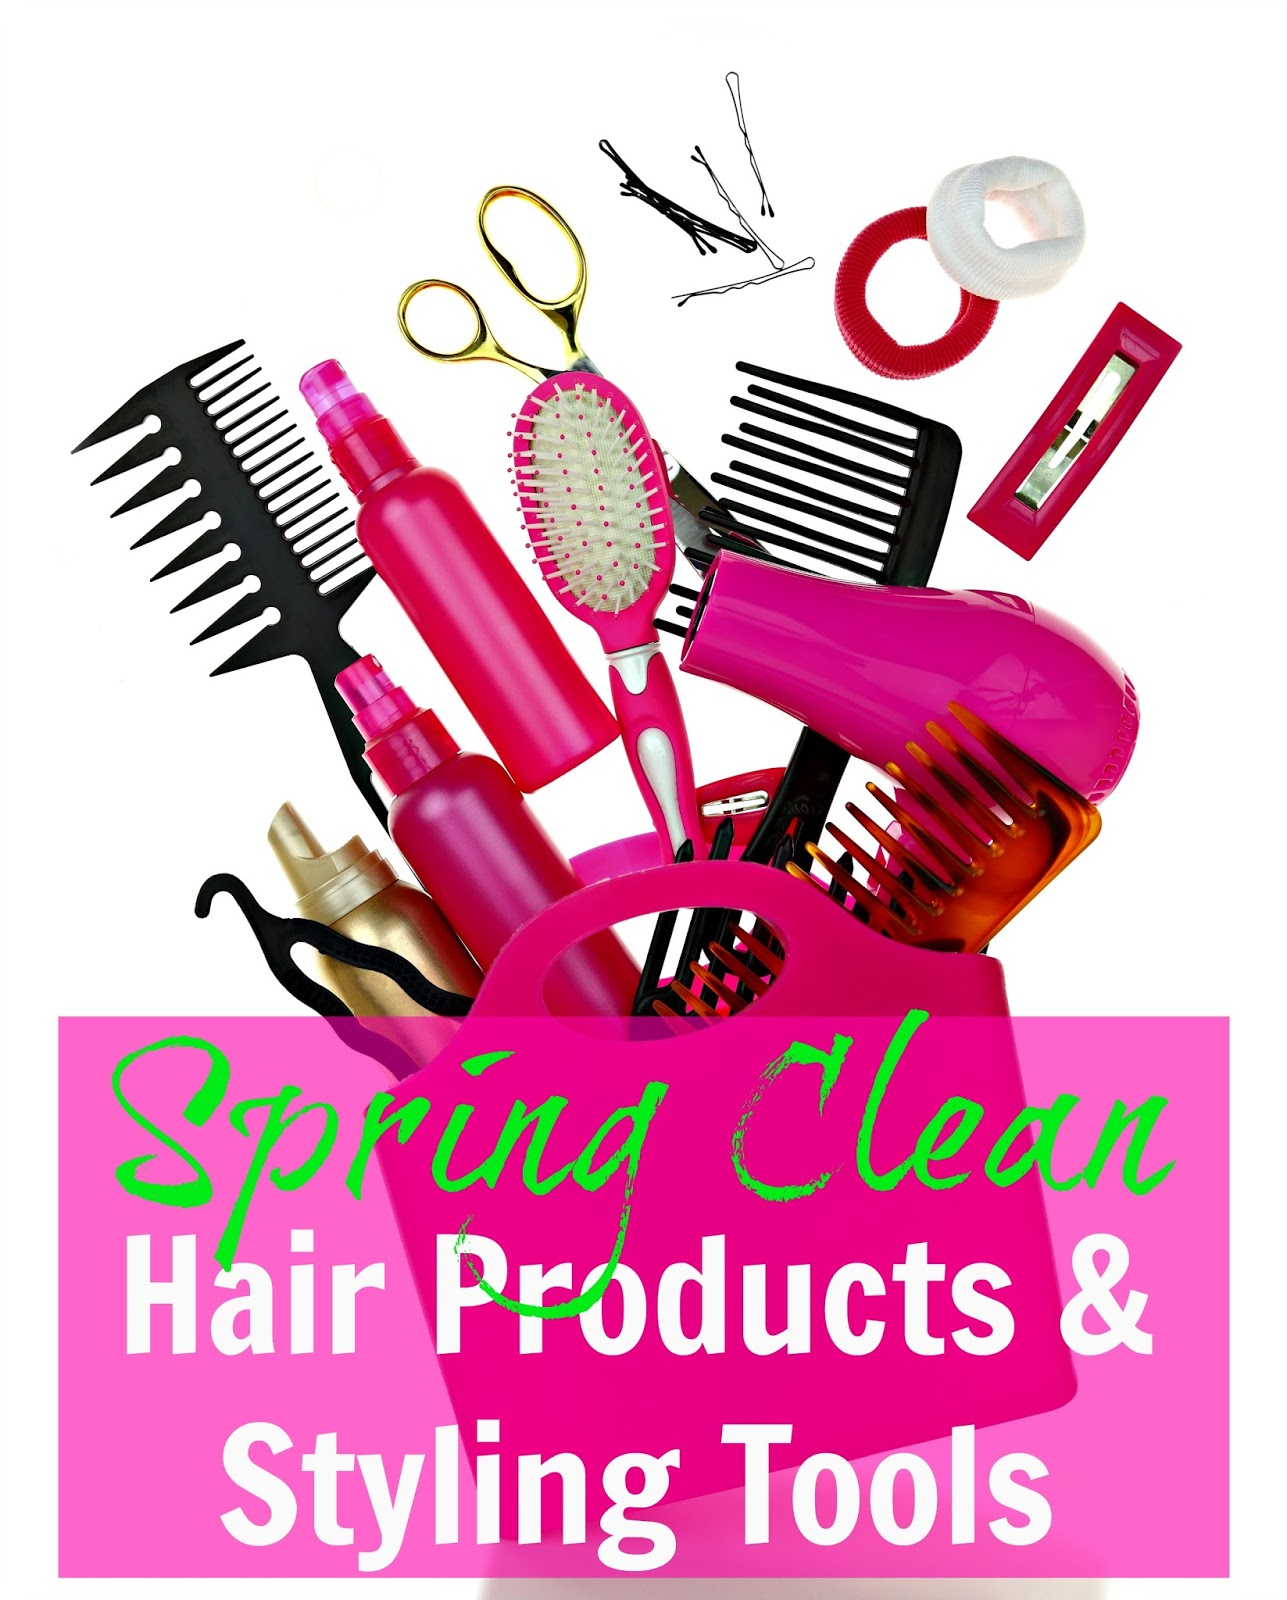 Spring cleaning also goes for hair products too!